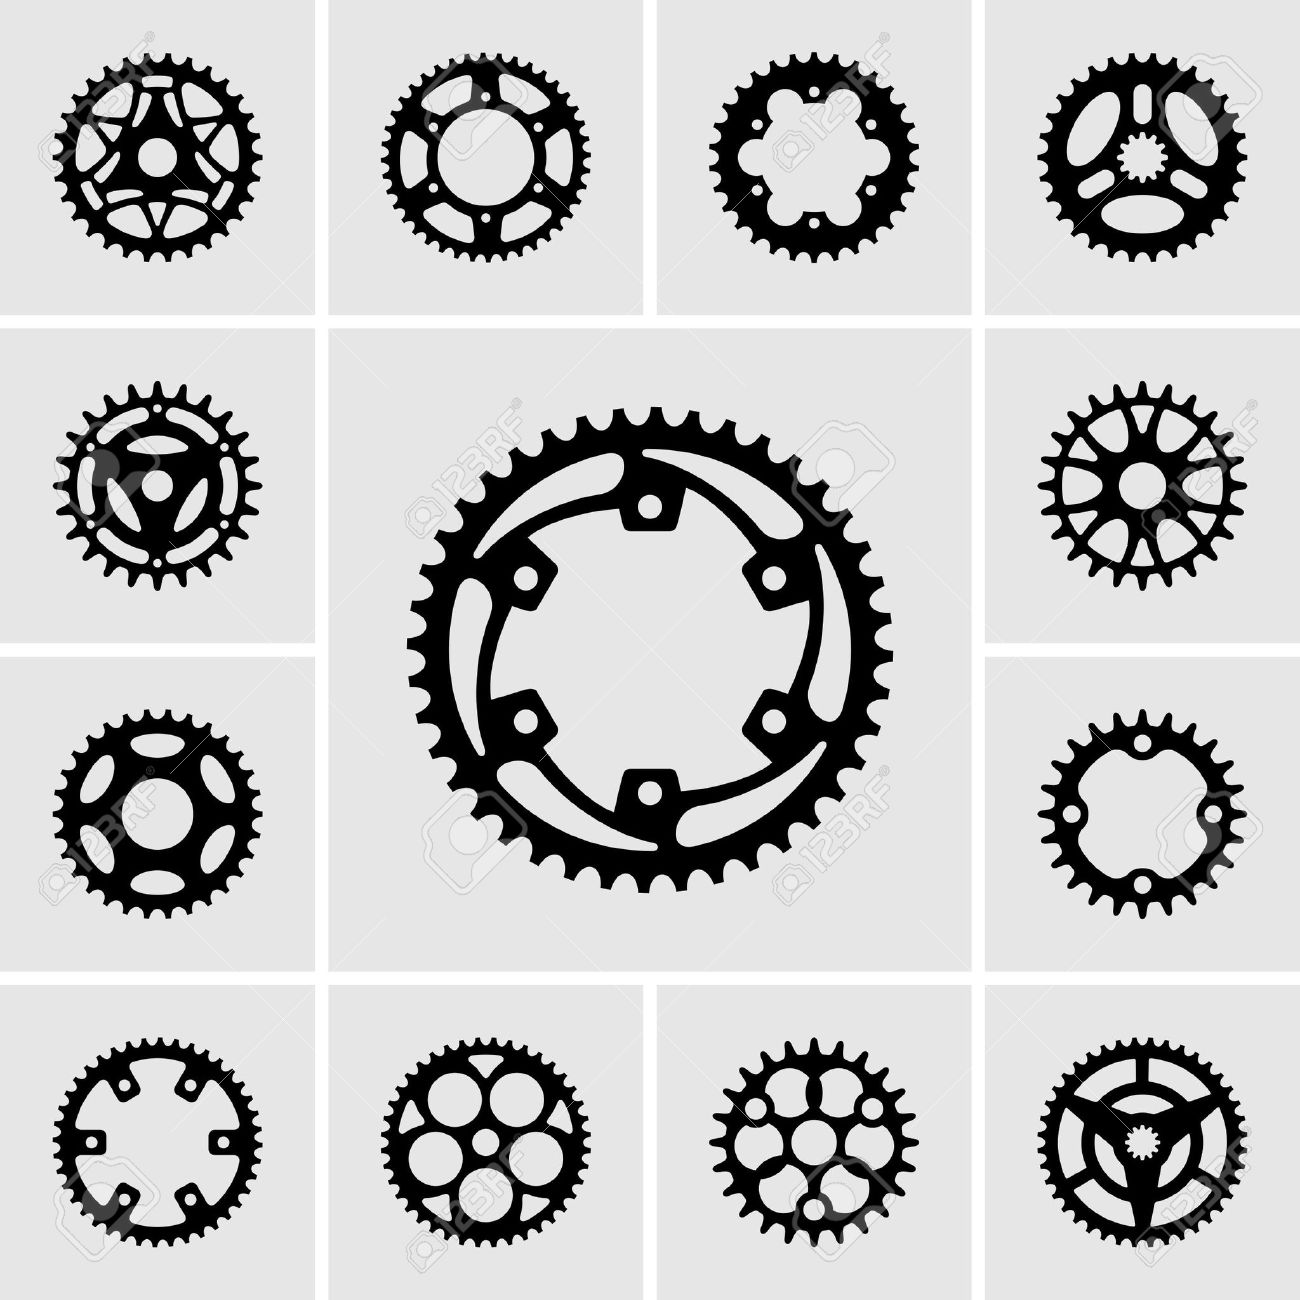 Bike Gear bike gear sprocket